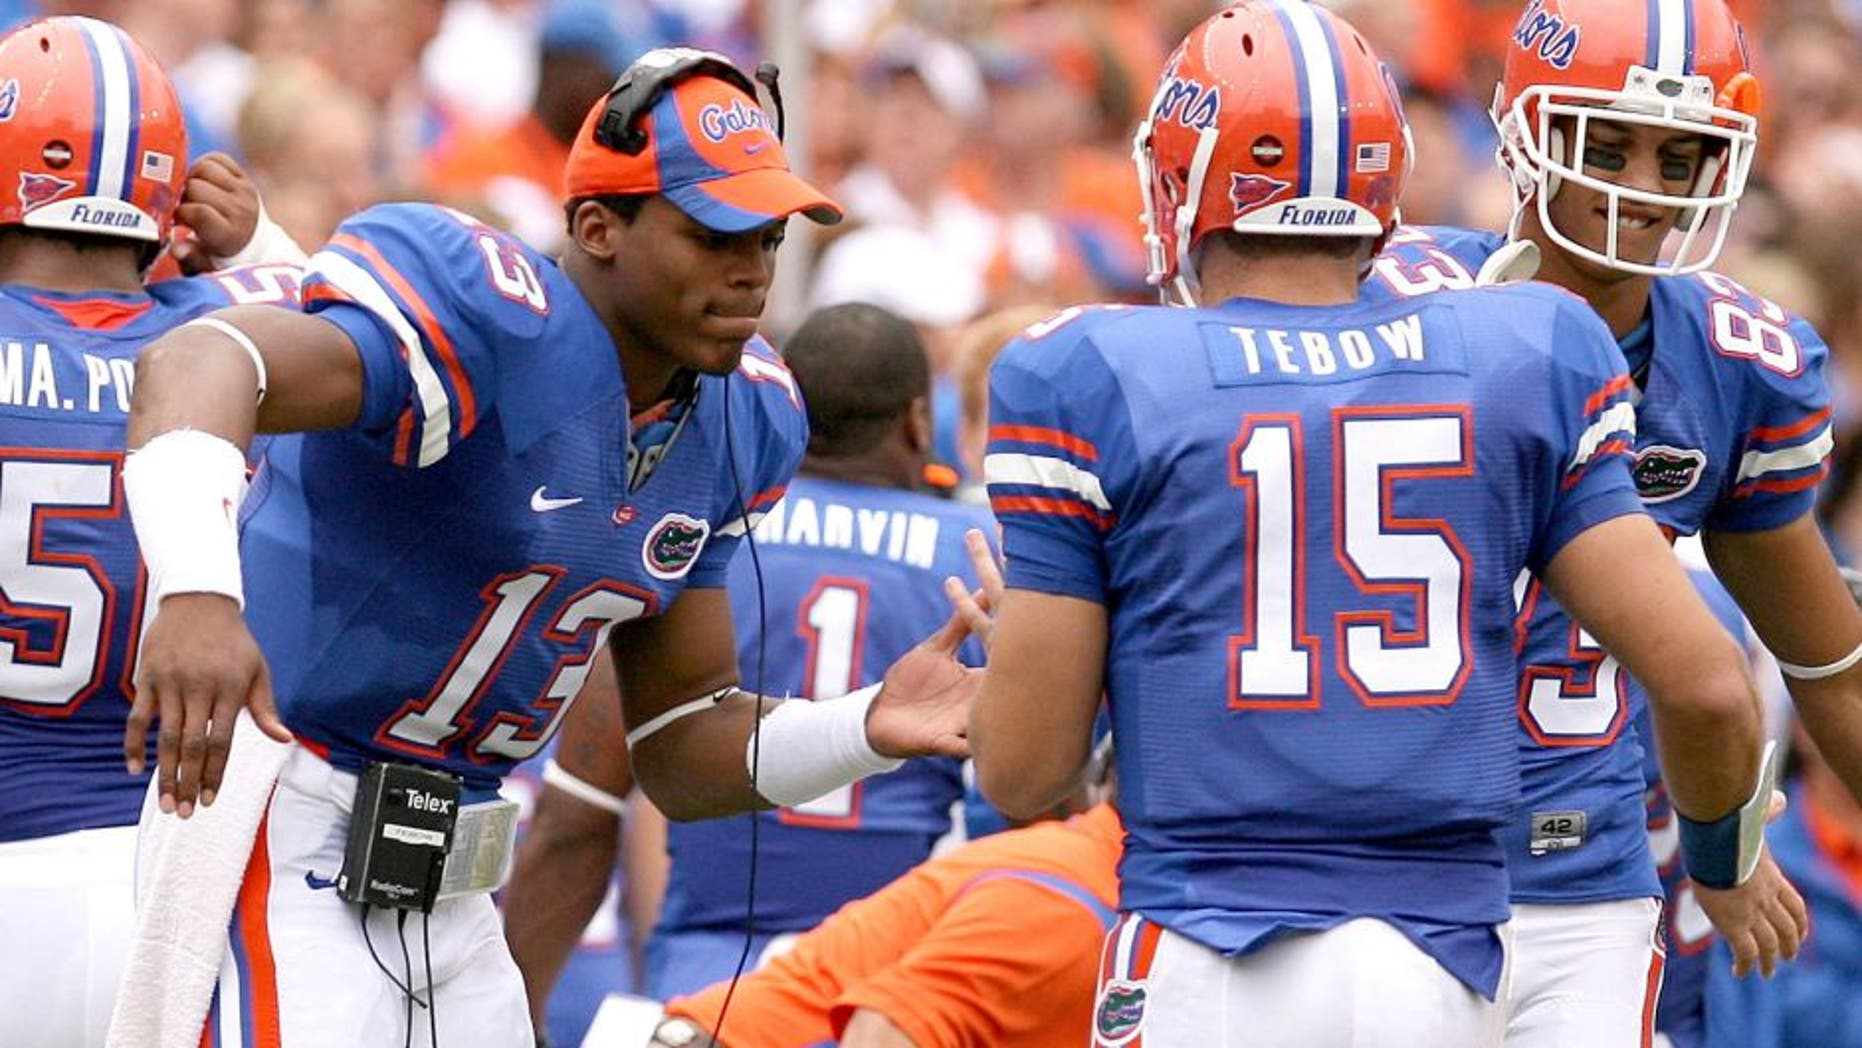 GAINESVILLE, FL - OCTOBER 25, 2008: Tim Tebow, #15 quarterback and Cam Newton, #13 quarterback of the University of Florida Gators football team celebrate on the sideline during the game against the Kentucky Wildcats at Ben Hill Griffin Stadium in Gainesville, Florida on October 25, 2008. The Gators won 63-5. (Photo by Tim Casey/University of Florida/Collegiate Images/Getty Images)